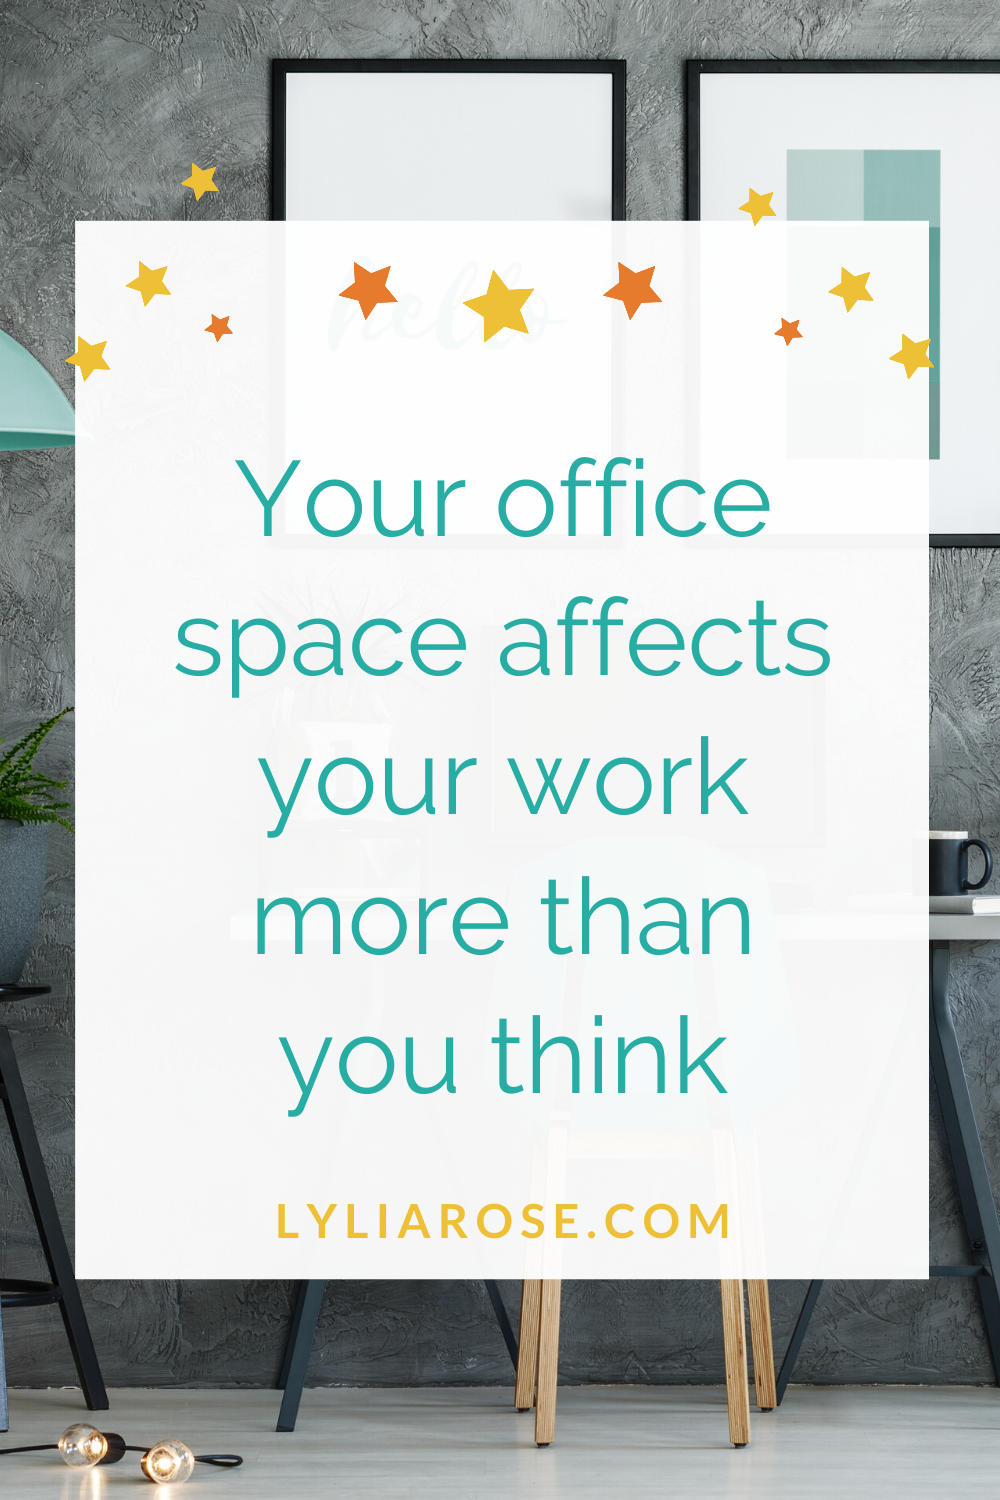 Your office space affects your work more than you think